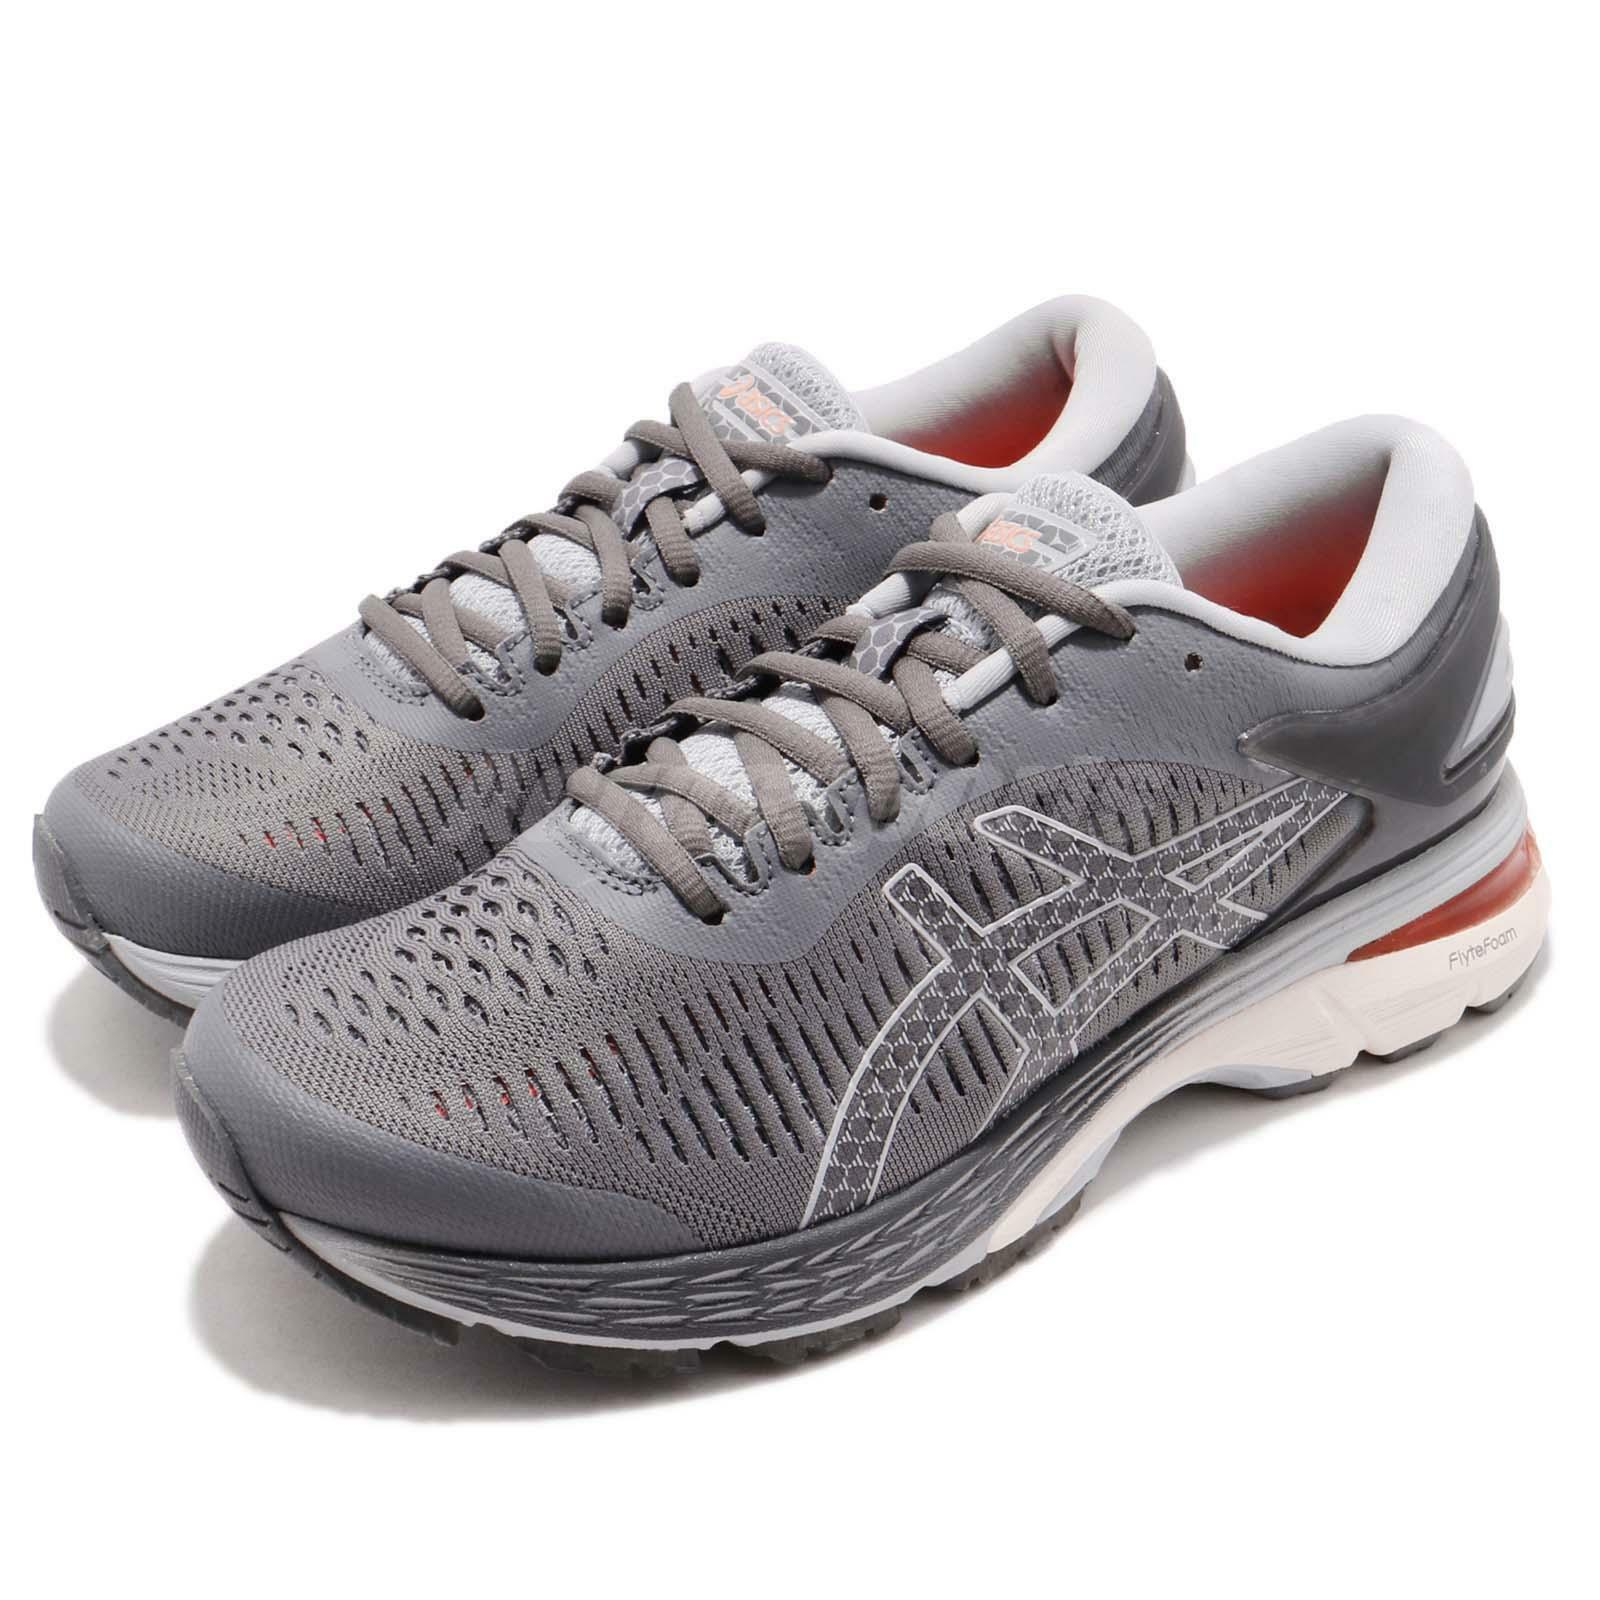 Asics Gel-Kayano 25 Carbon Grey White Women Running shoes  Sneakers 1012A026-020  novelty items